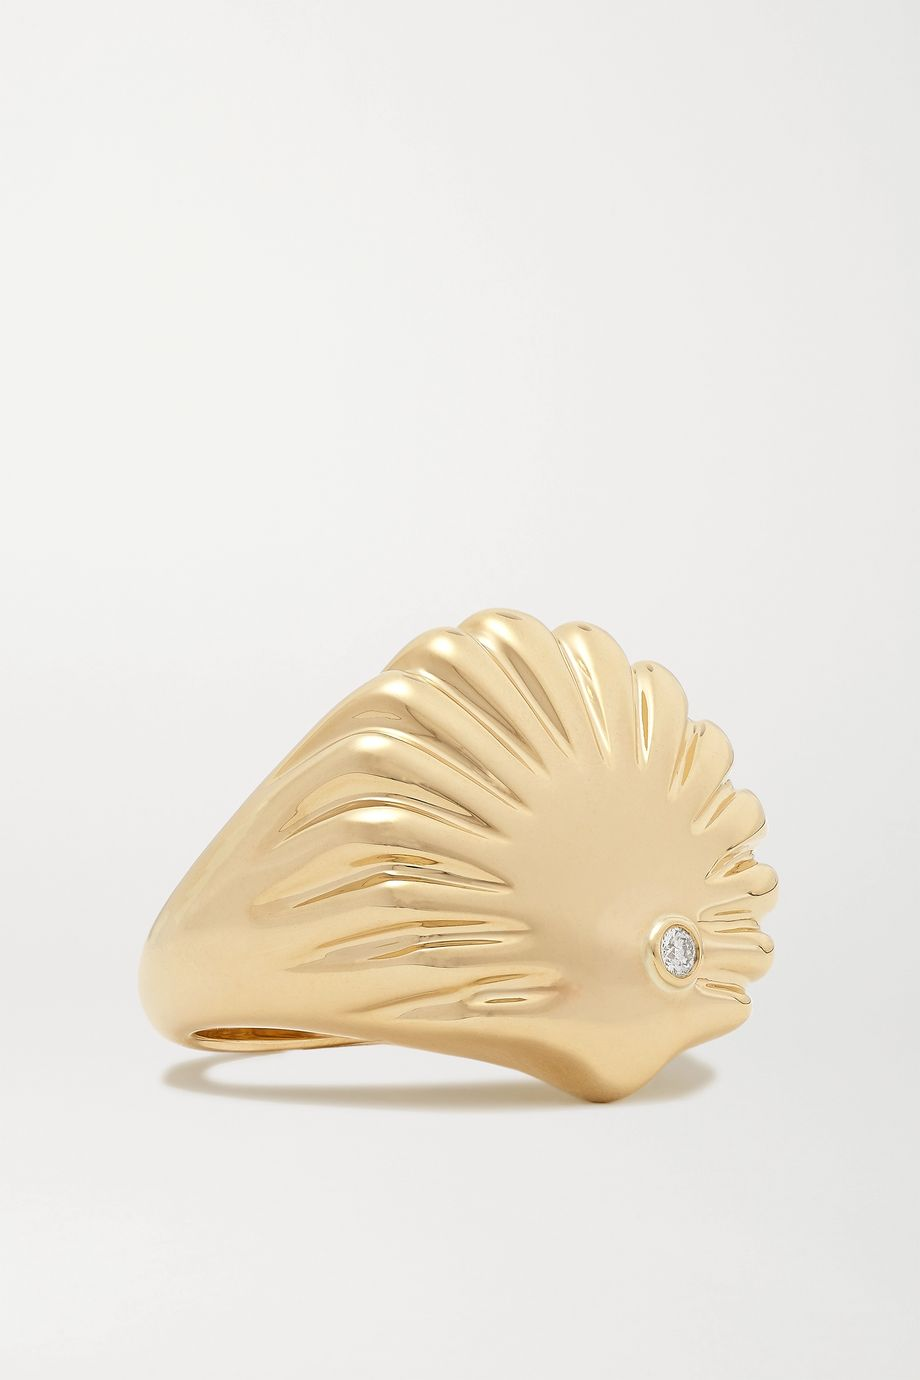 Yvonne Léon 9-karat gold diamond ring